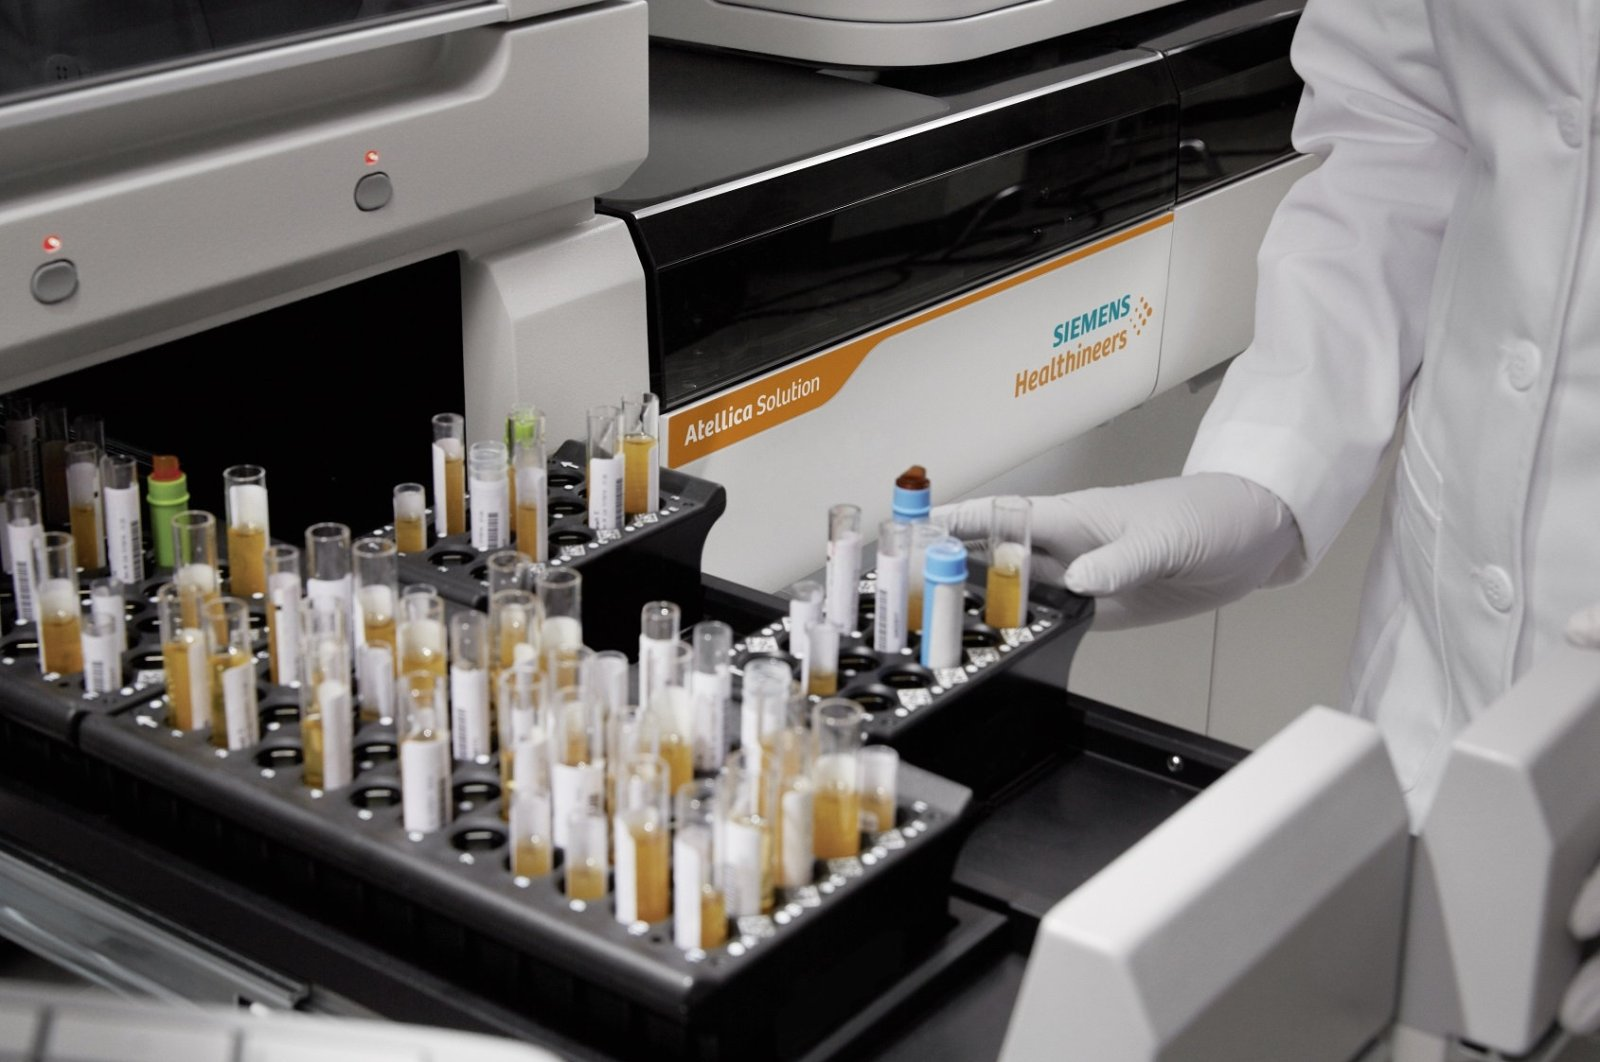 This undated file photo shows a lab at a Siemens Healthineers building in Germany. (Courtesy of Siemens Healthineers)